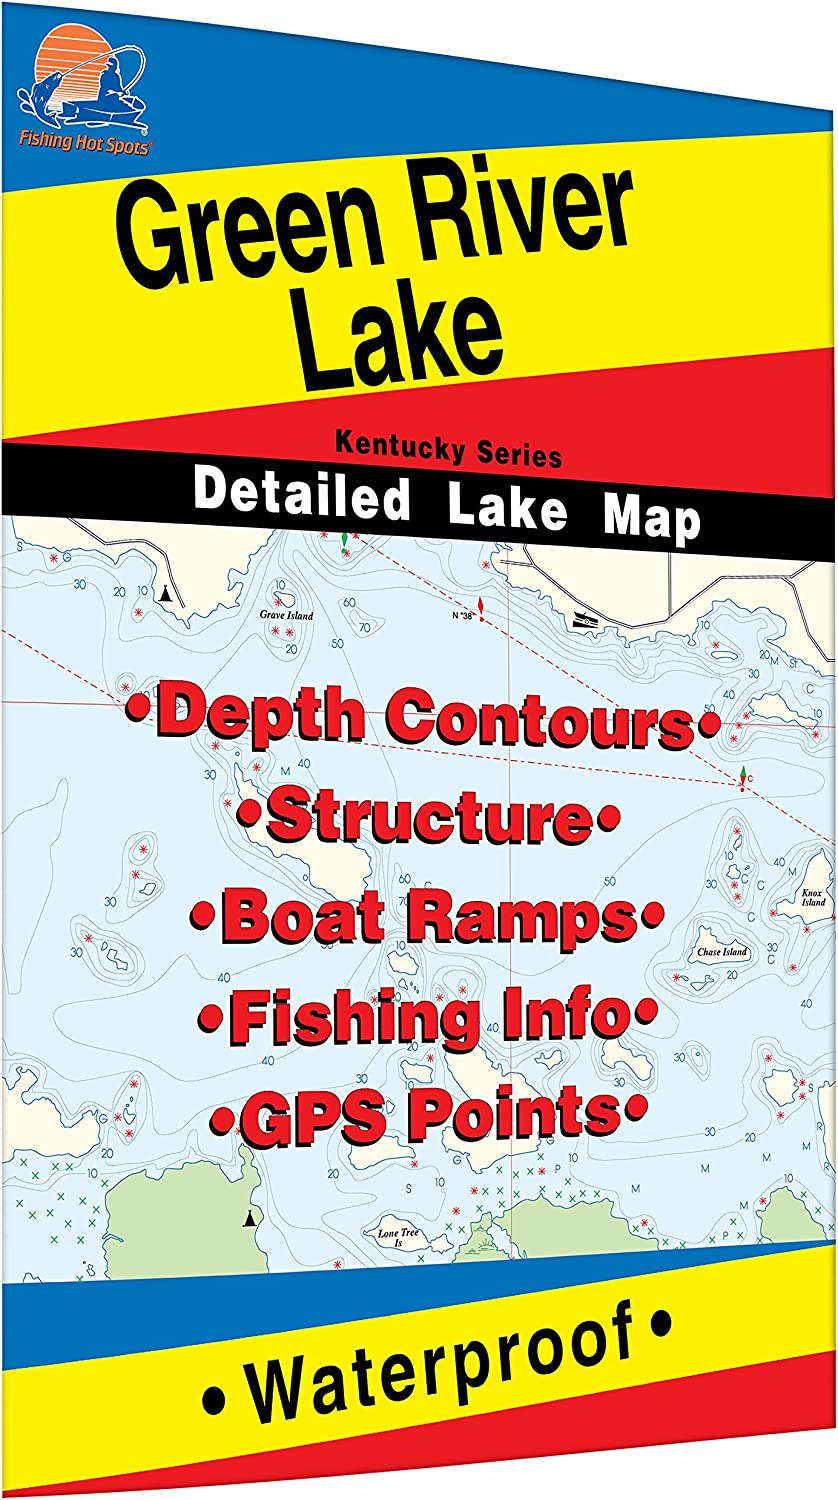 Amazon.com : Green River Lake Fishing Map : Sports & Outdoors